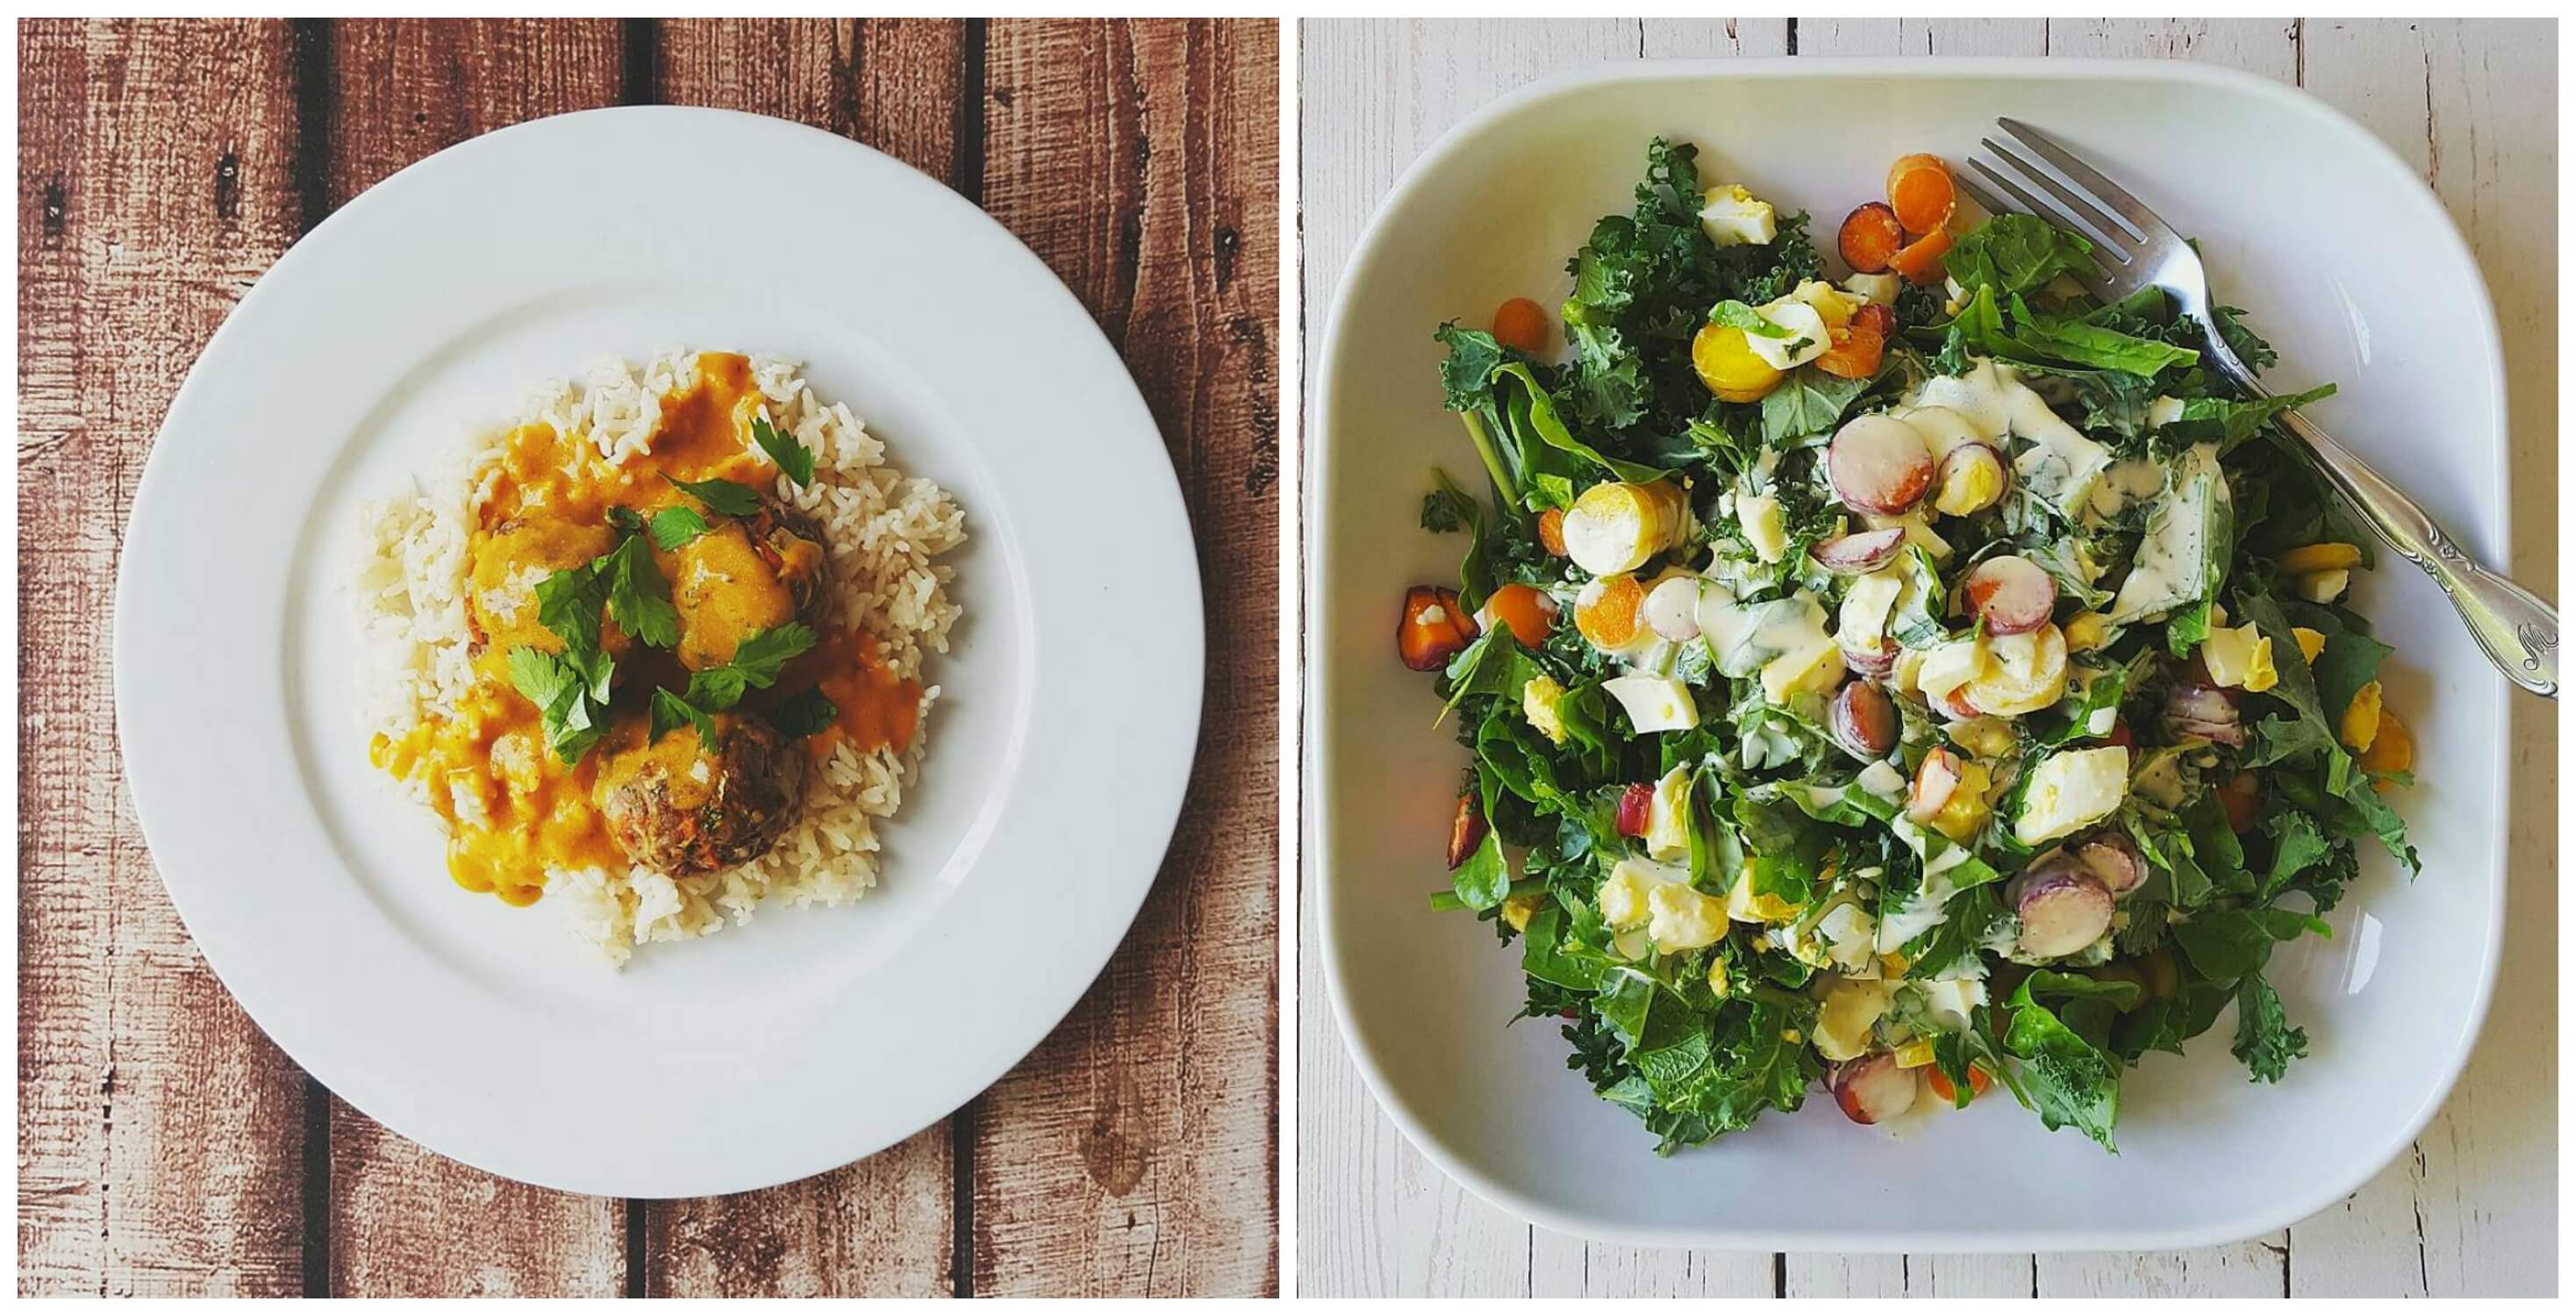 collage of two plates of plant based food